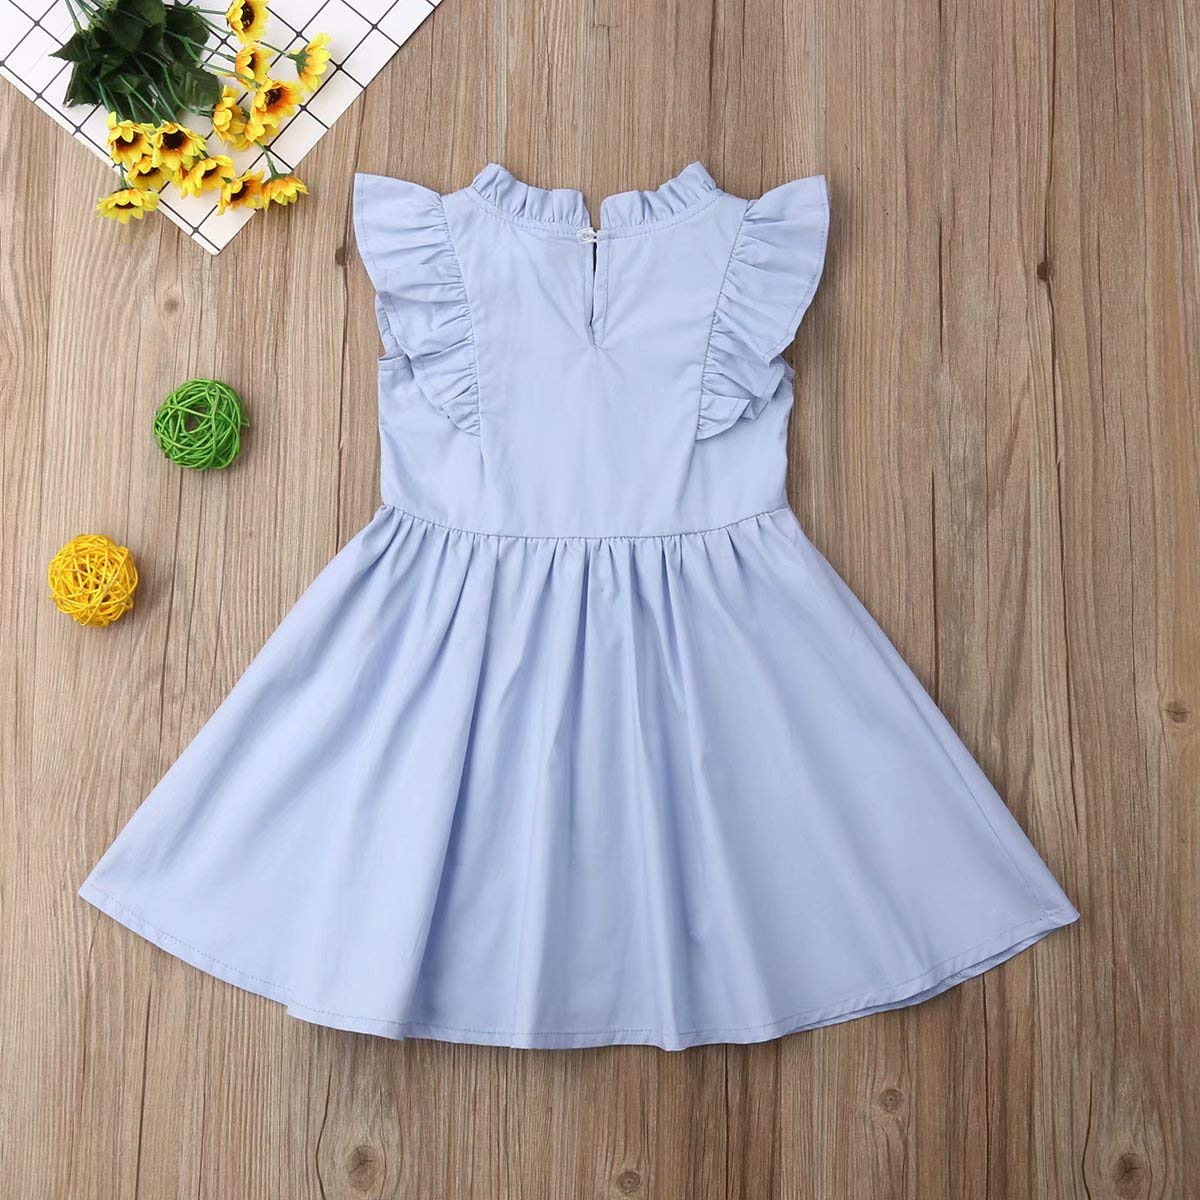 Bowanadacles Kids Infant Baby Girls Sleeveless Ruffled Sleeve Solid Color Princess Tutu Party Dress Summer Clothes